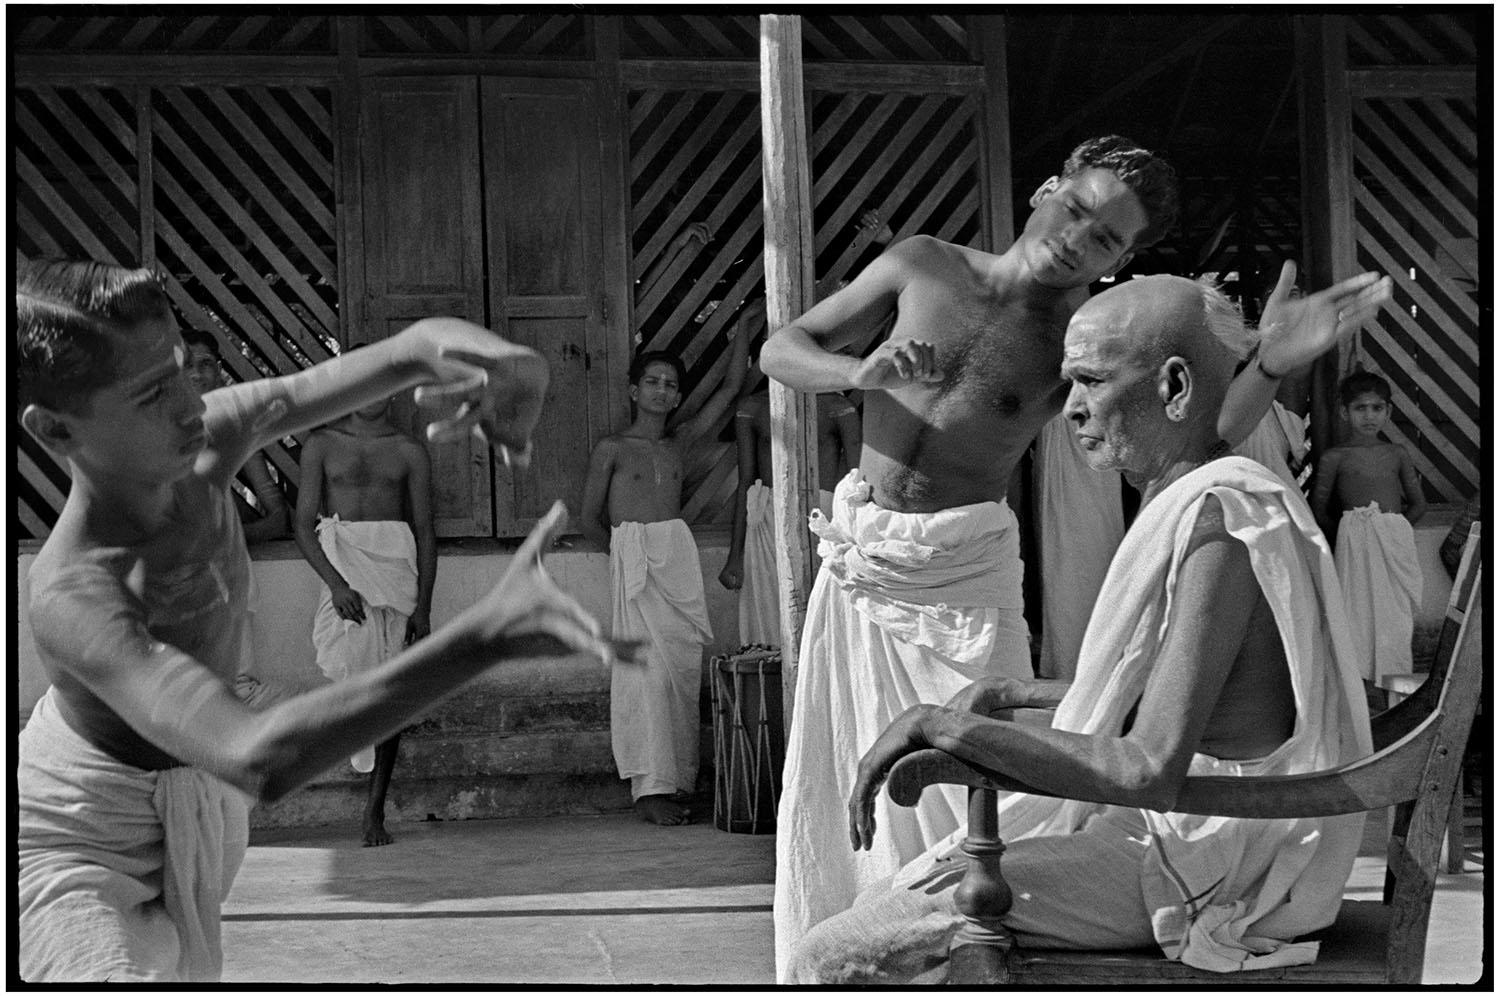 culture kathakali training black and white henri cartier-bresson